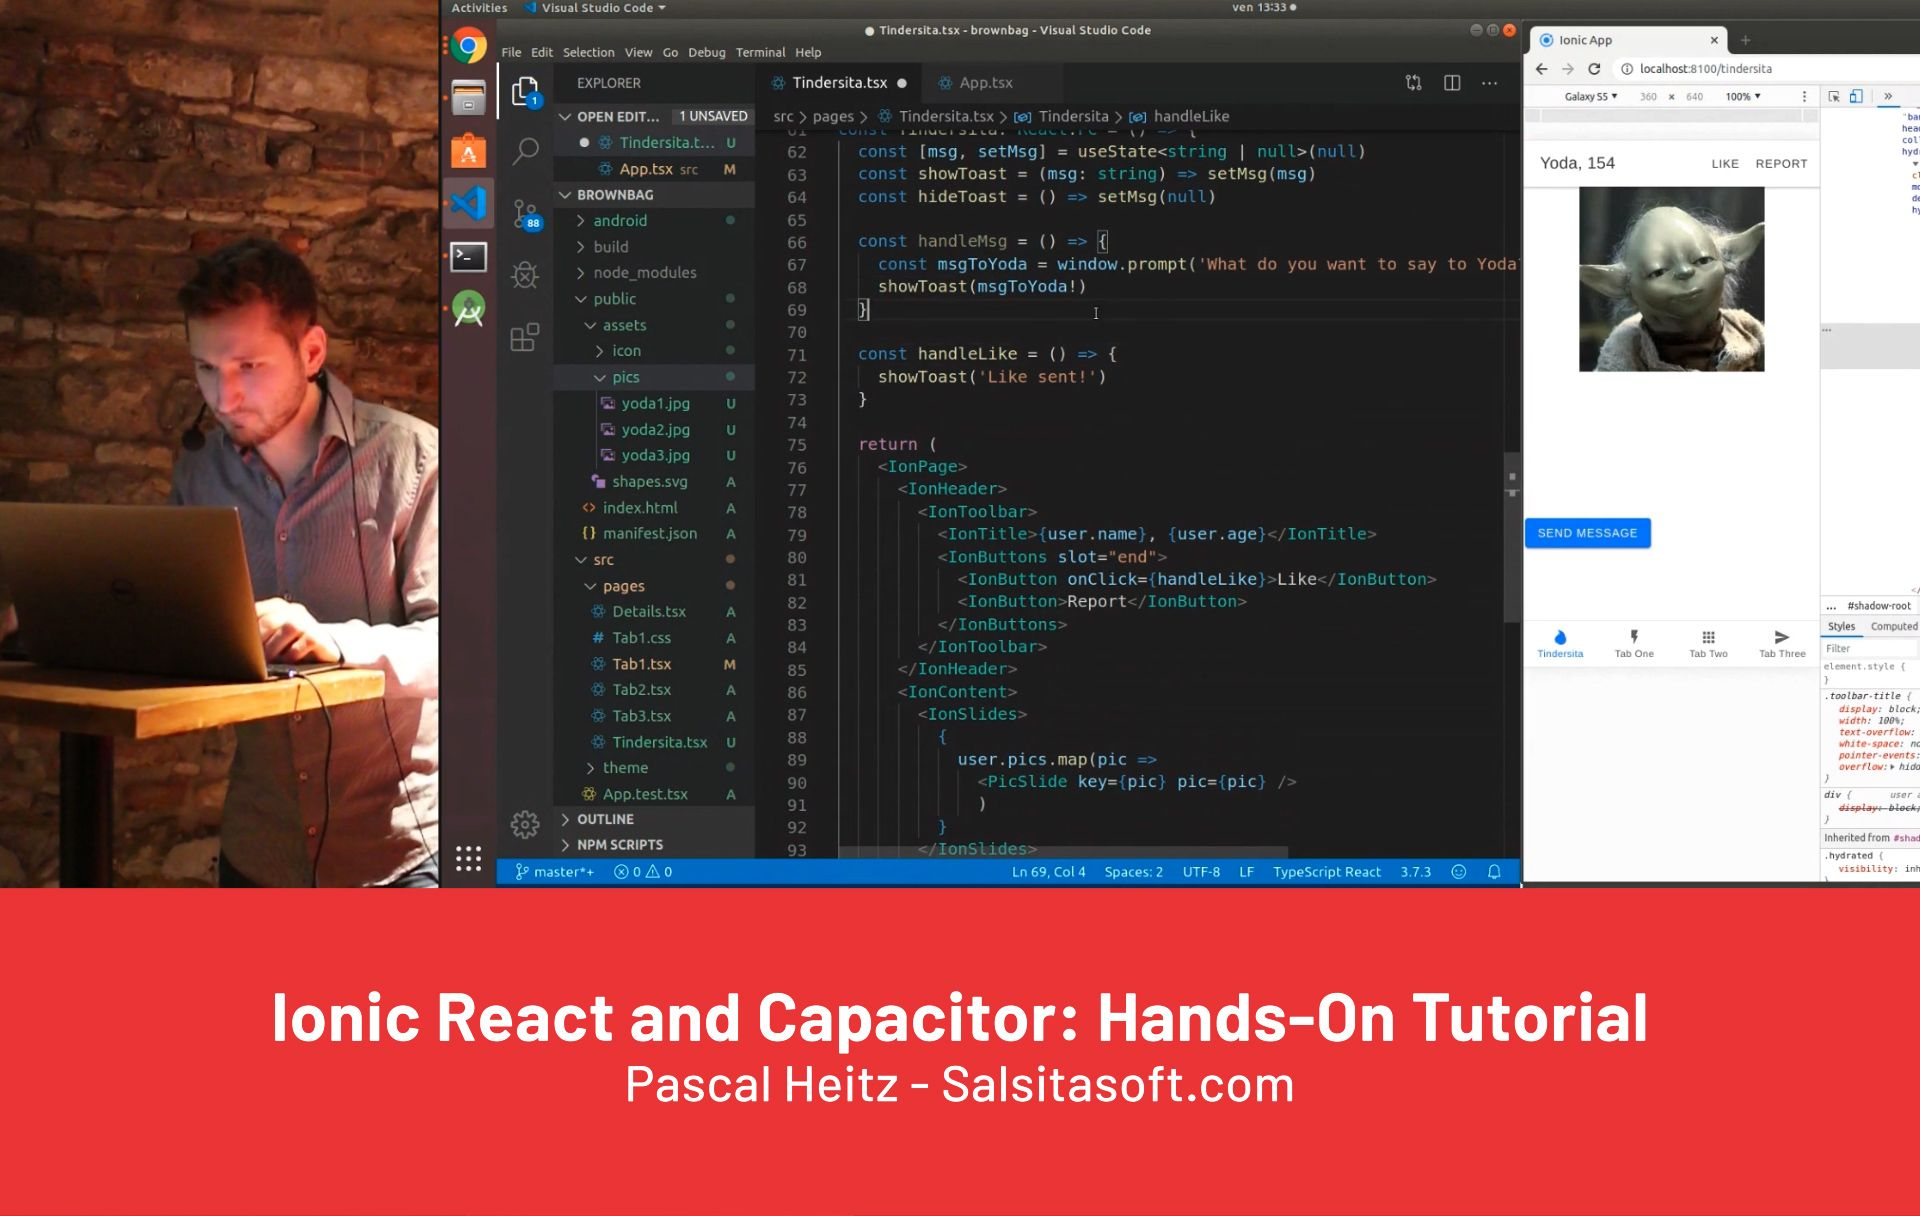 Ionic React and Capacitor: Hands-On Tutorial